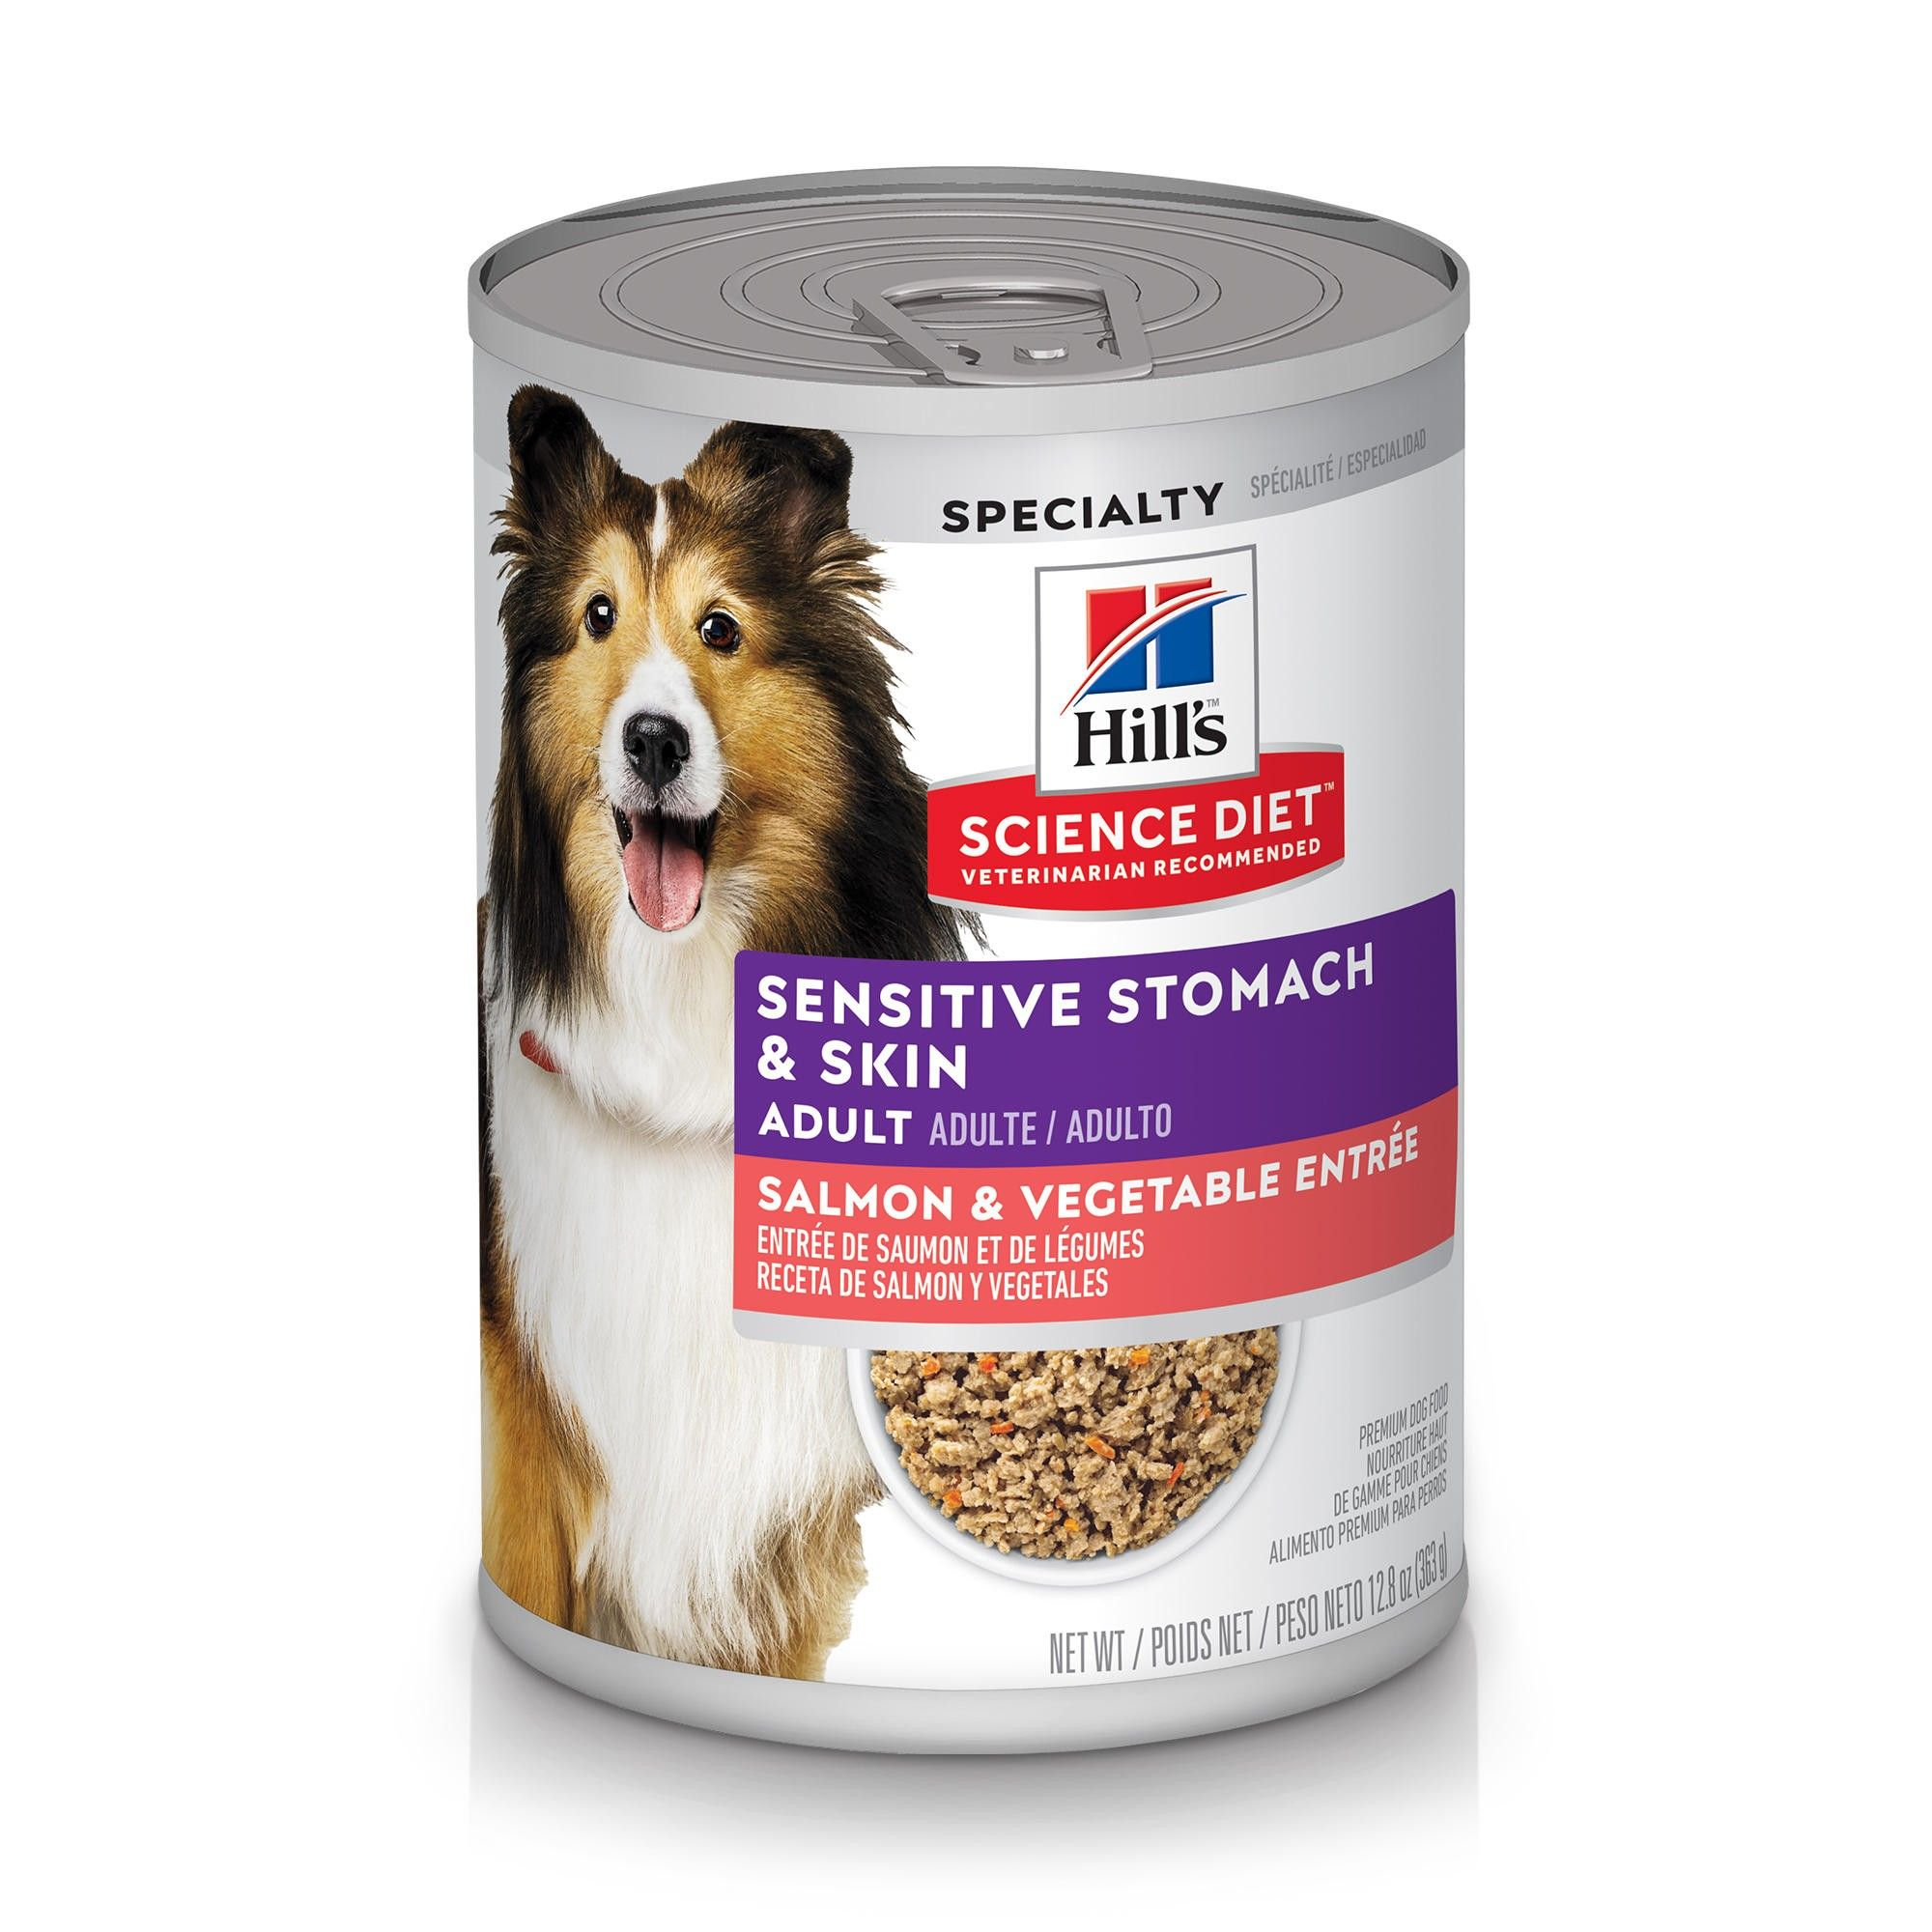 Hill's Science Diet Adult Sensitive Stomach & Skin Grain-Free Salmon & Vegetable Entree Canned Dog Food, 12.8-oz